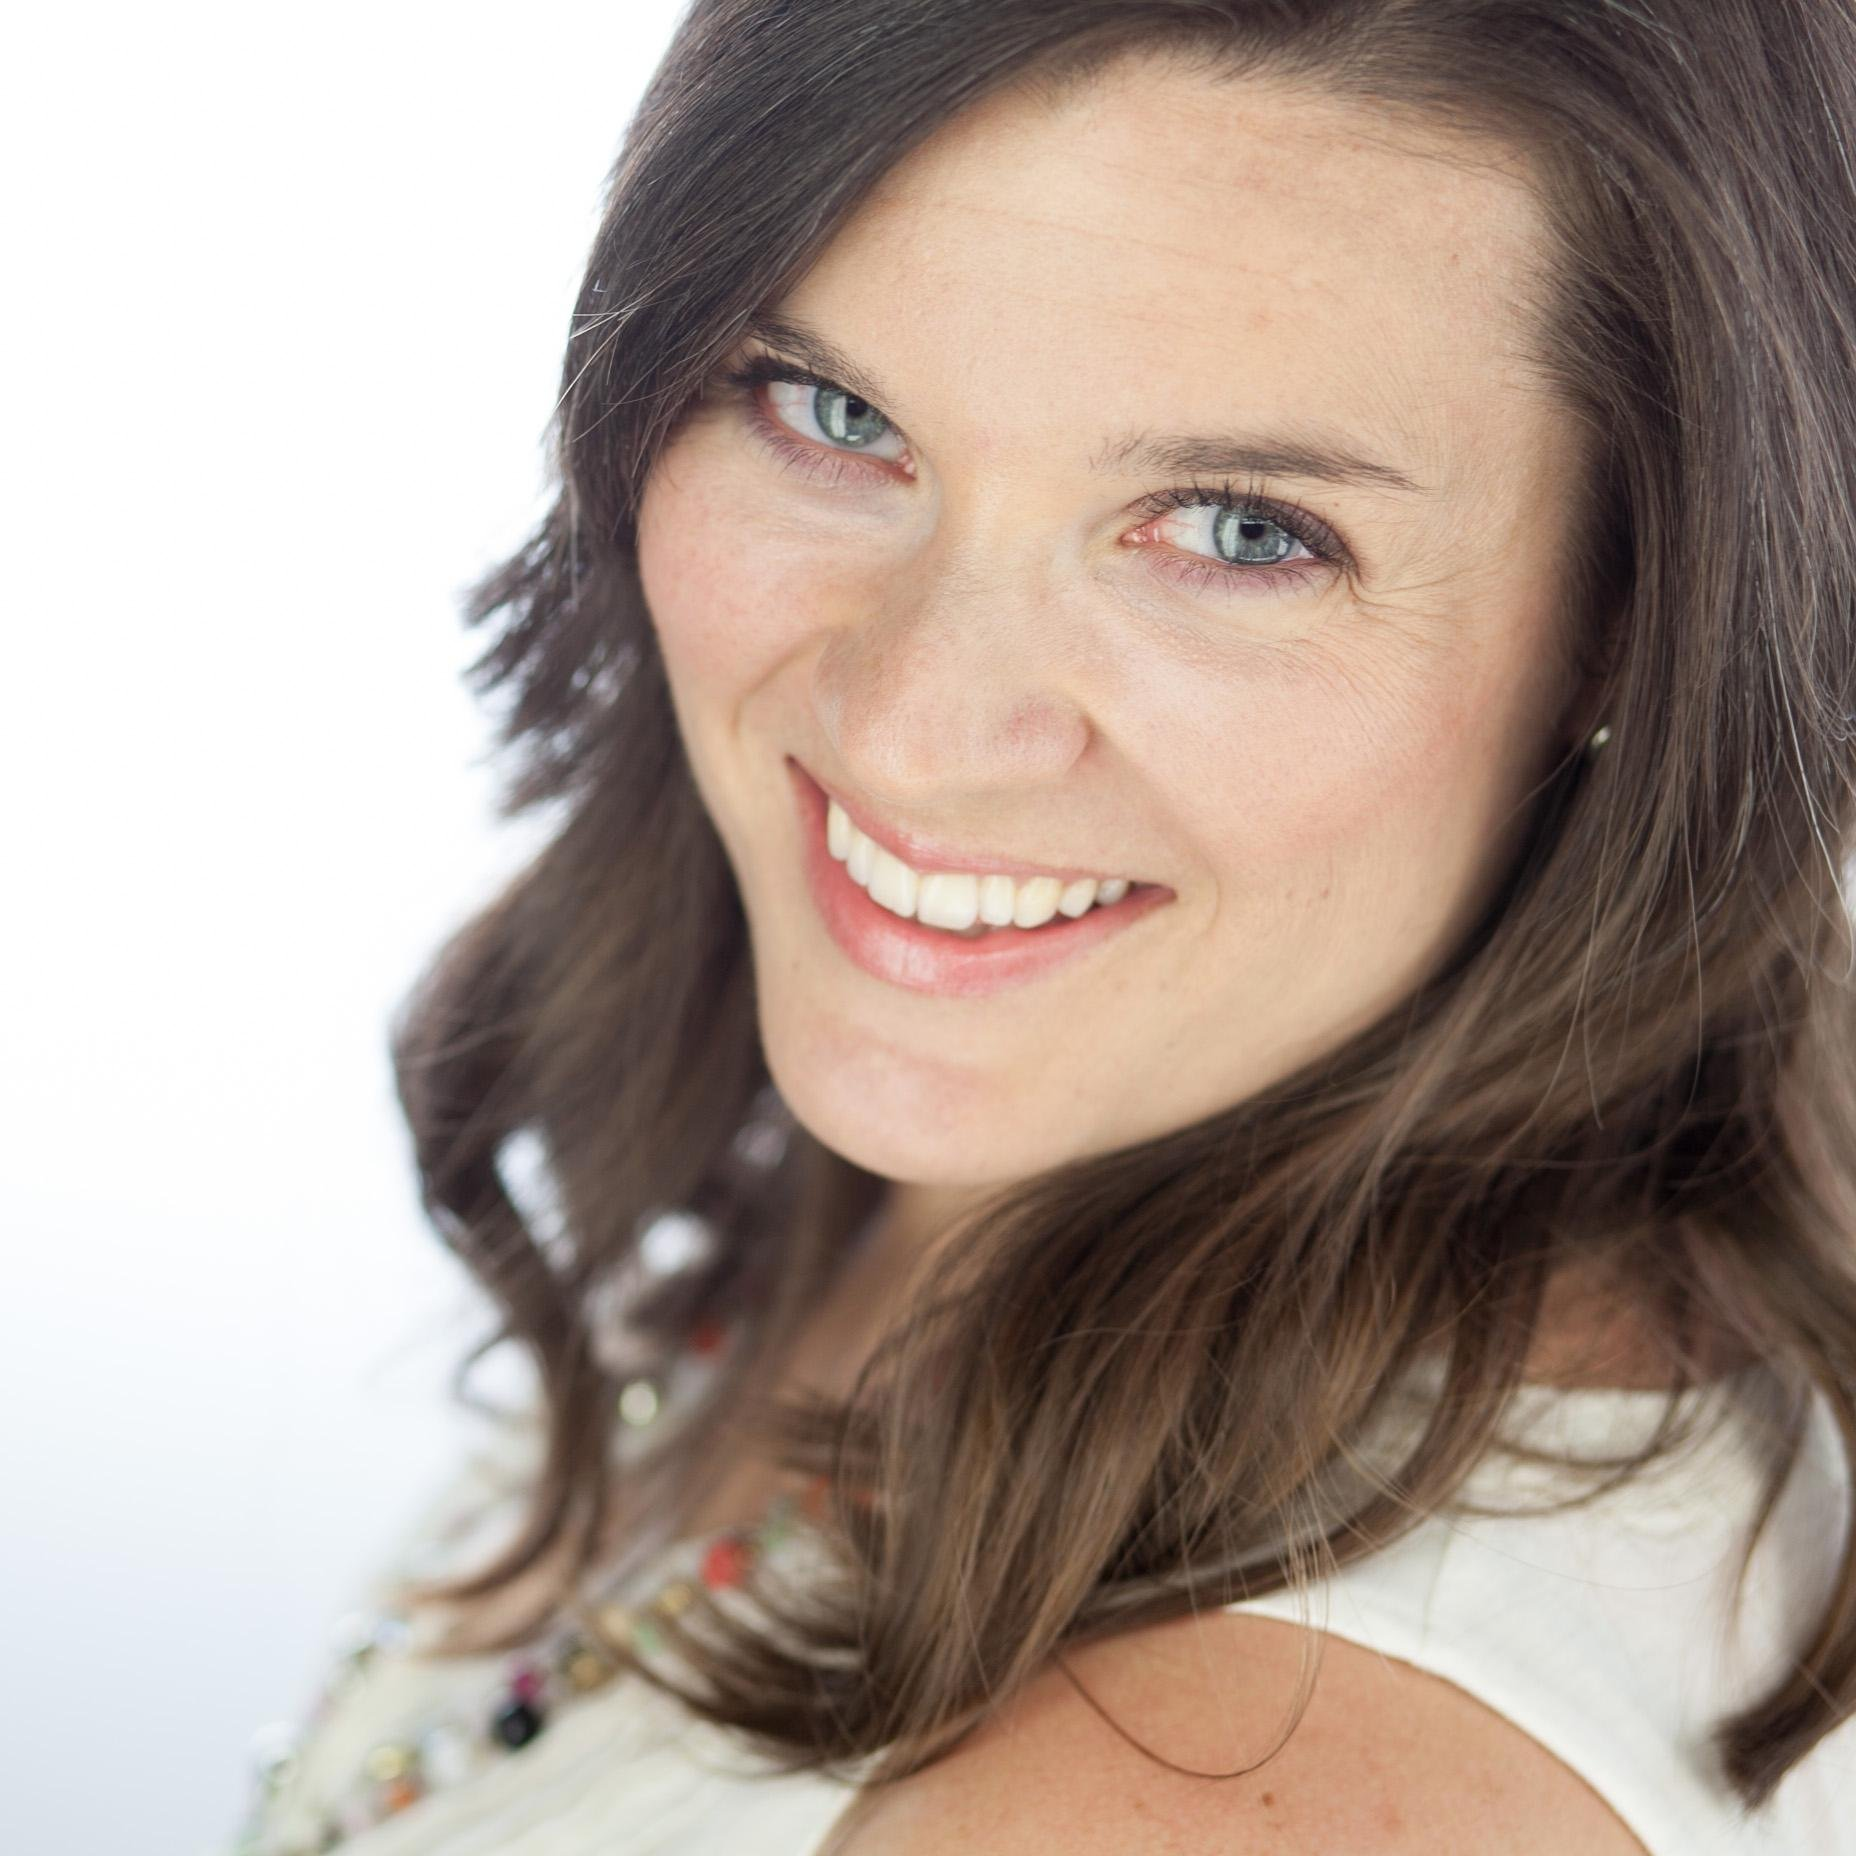 Blakely Page, RD, MaxLove Project; In2Great Integrative and Functional Medicine Clinic